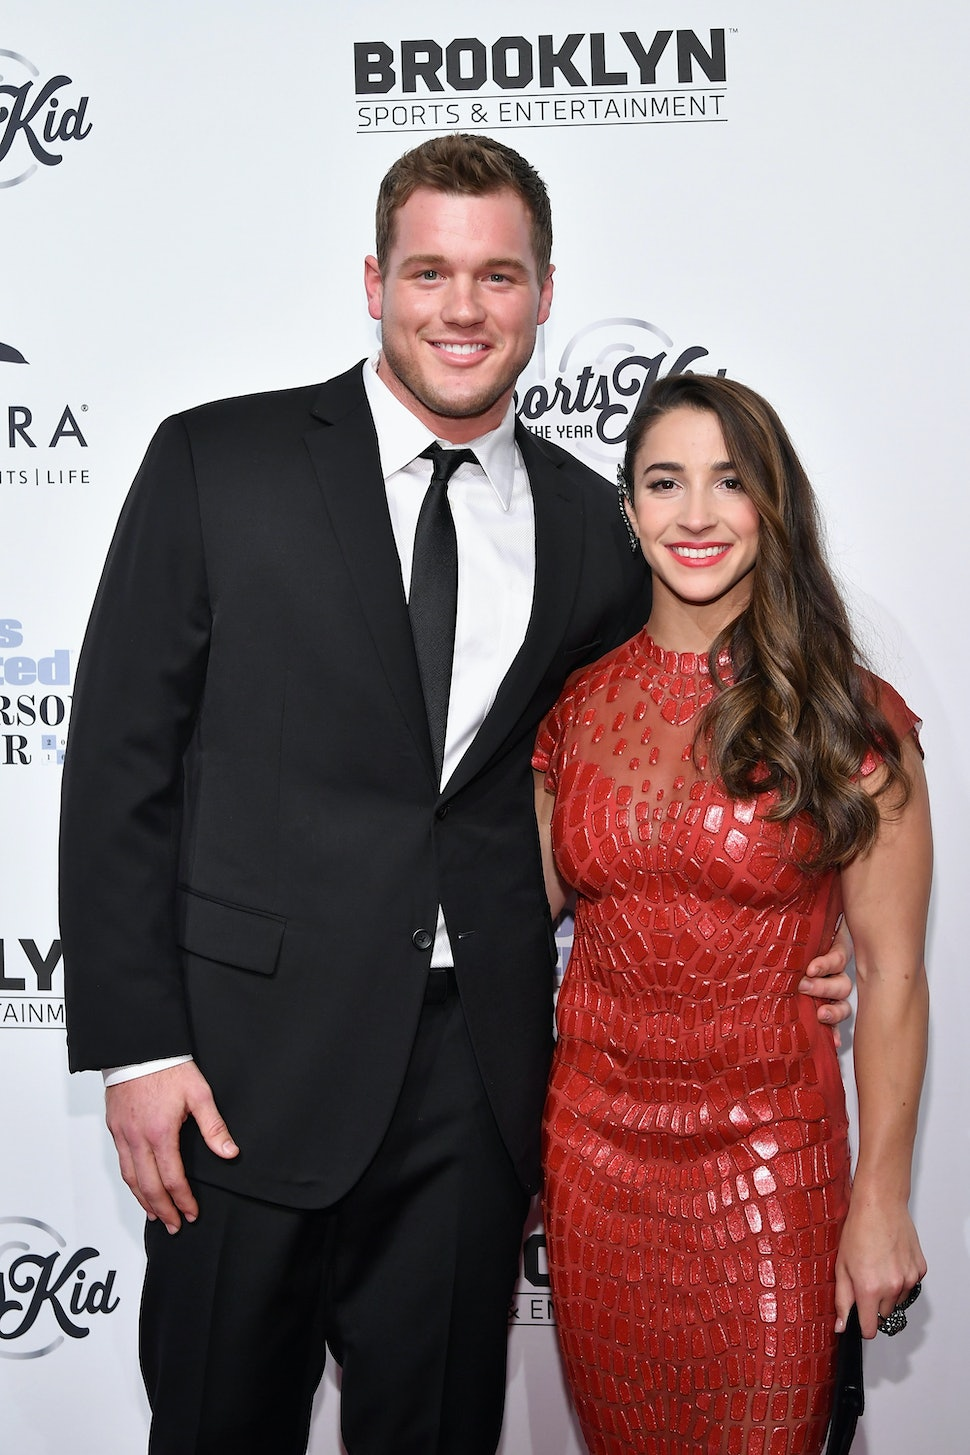 Colton From The Bachelorette Dated Aly Raisman That S Not His